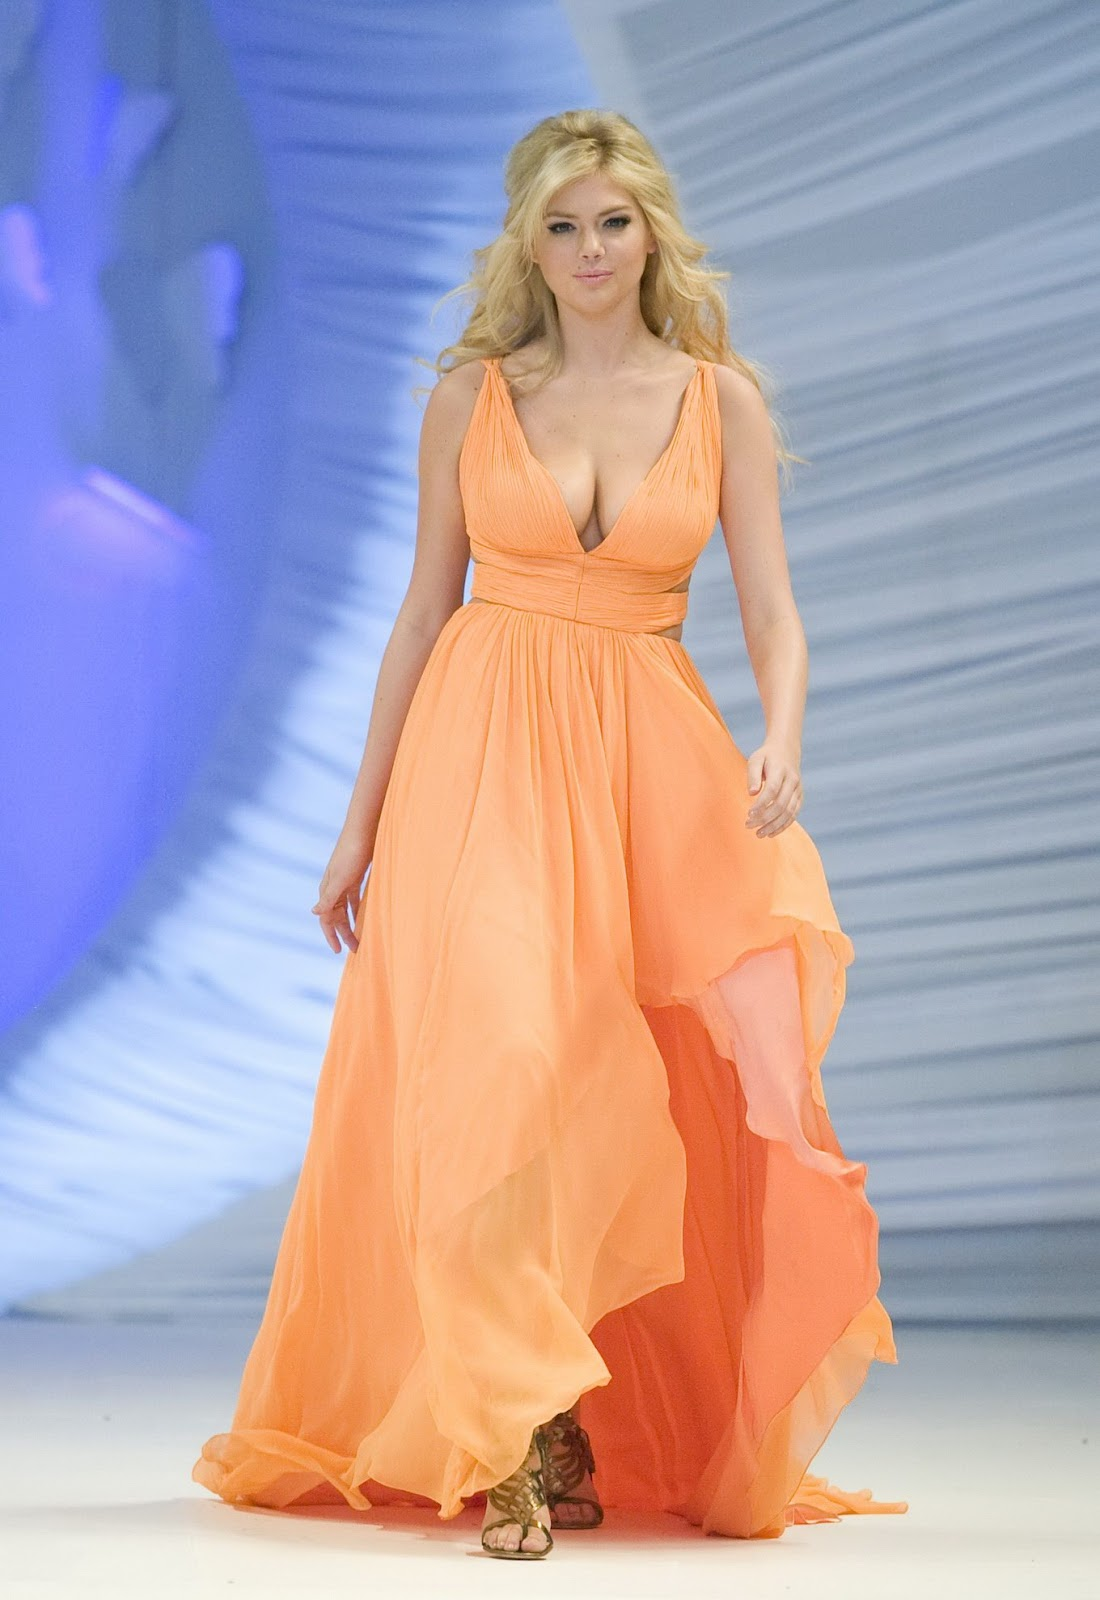 Kate Upton In Crepe Dress At Liverpool Fashion Festival